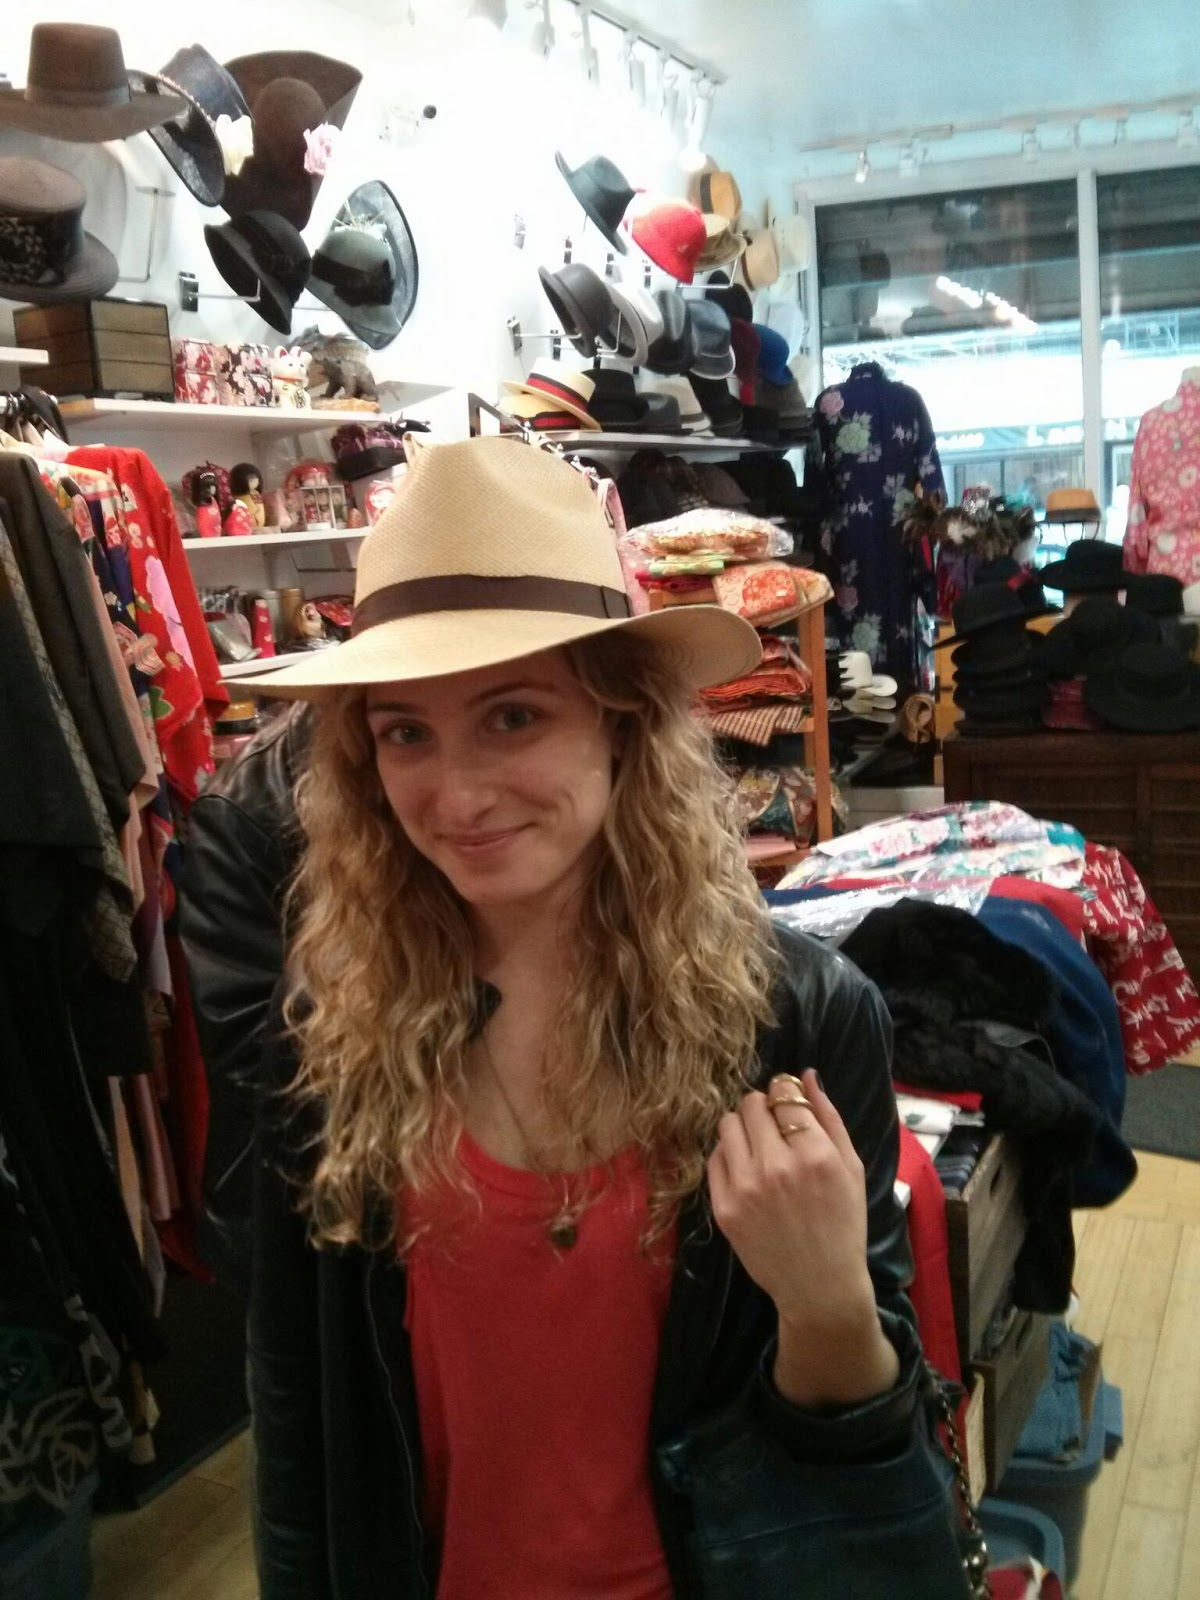 Ladies Panama Hat in SoHo NYC